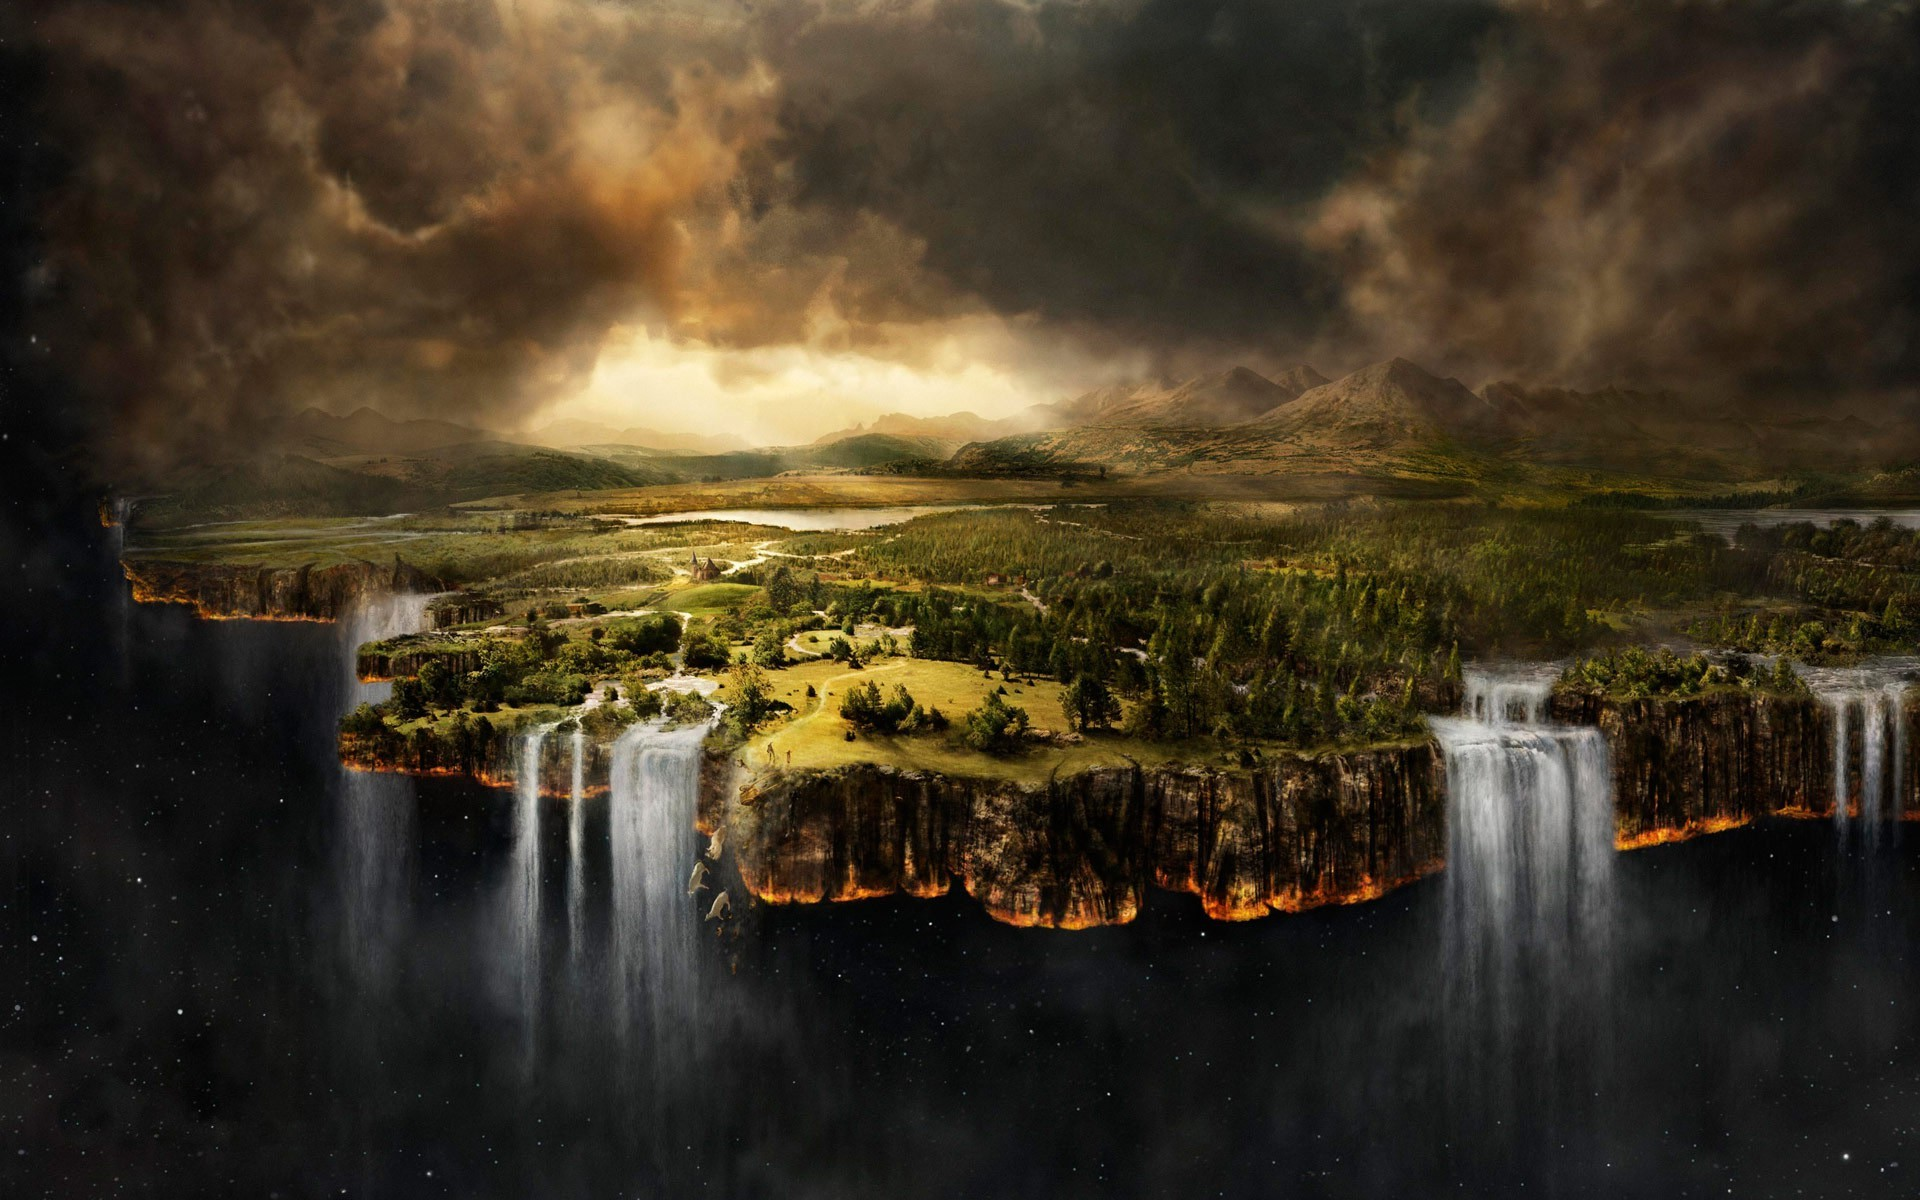 Dream About Wallpaper Falling Off Fantasy Art Space Landscape Wallpapers Hd Desktop And